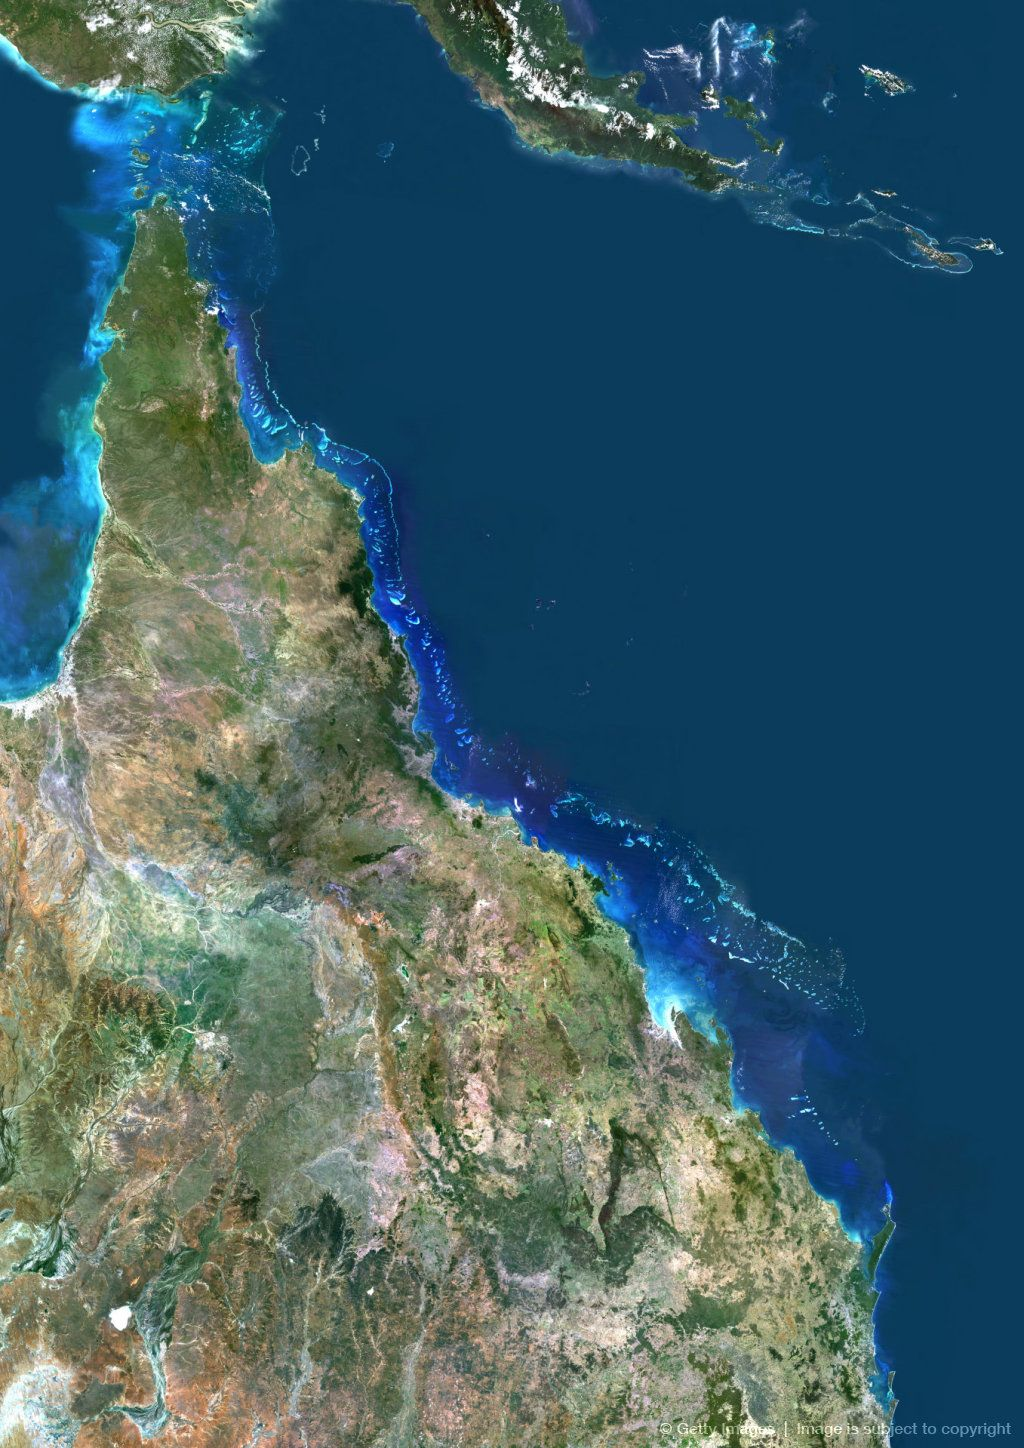 True Color Satellite Image Of The Great Barrier Reef